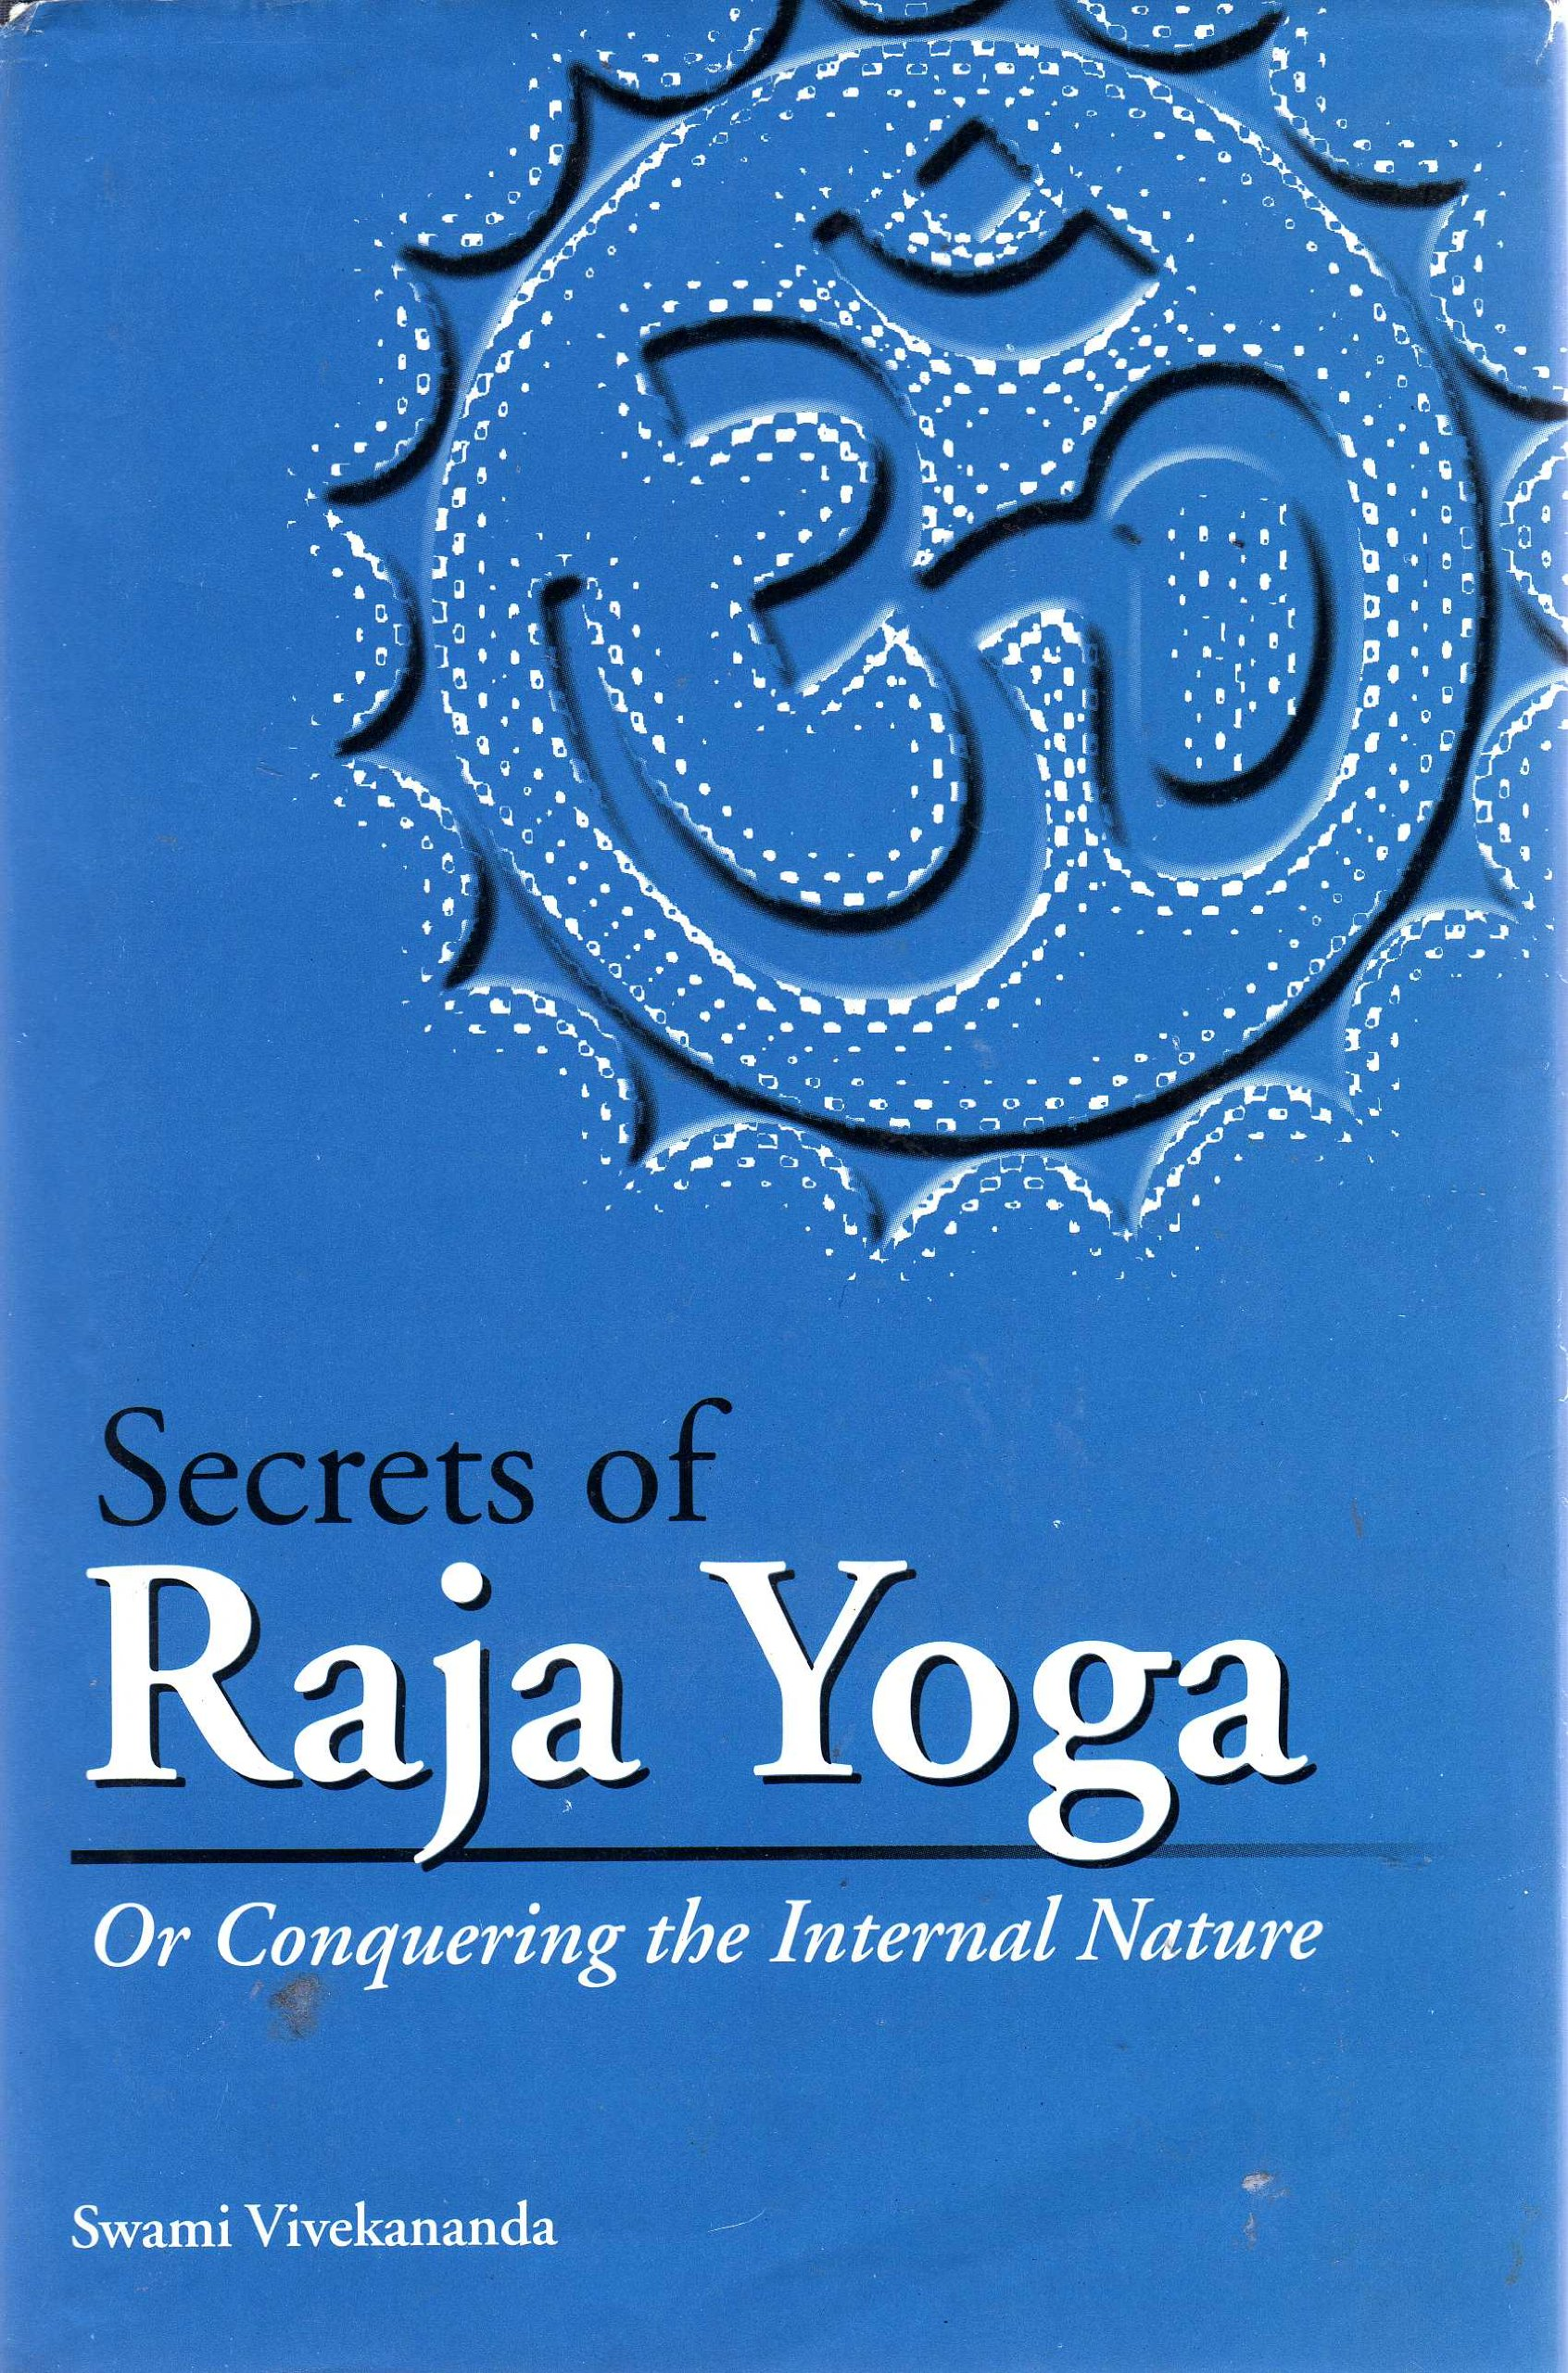 Secrets of Raja Yoga: Swami Vivekananda: 9788177557558 ...